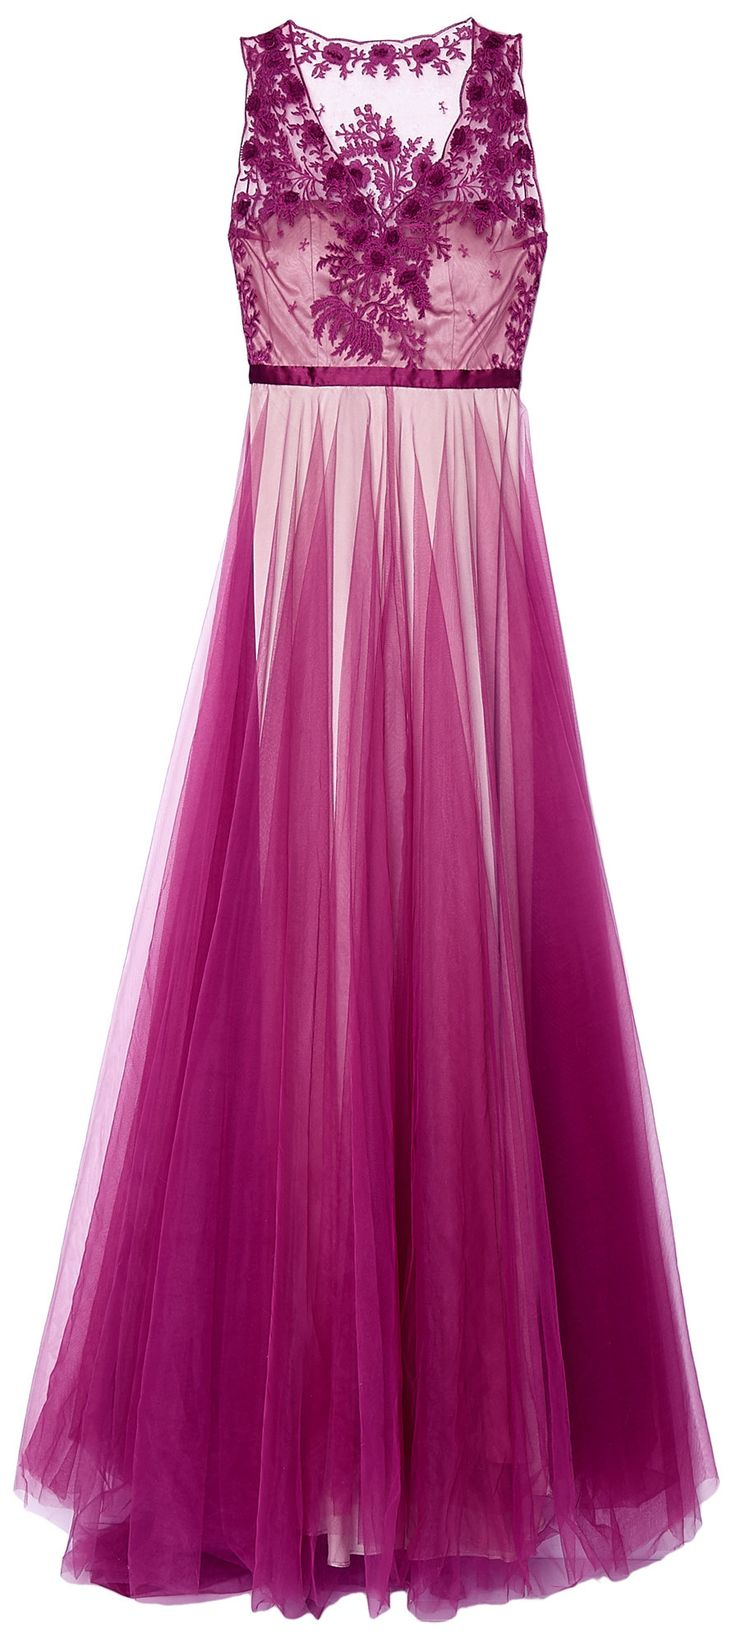 41 best Vestidos images on Pinterest | Party outfits, Ball gown and ...